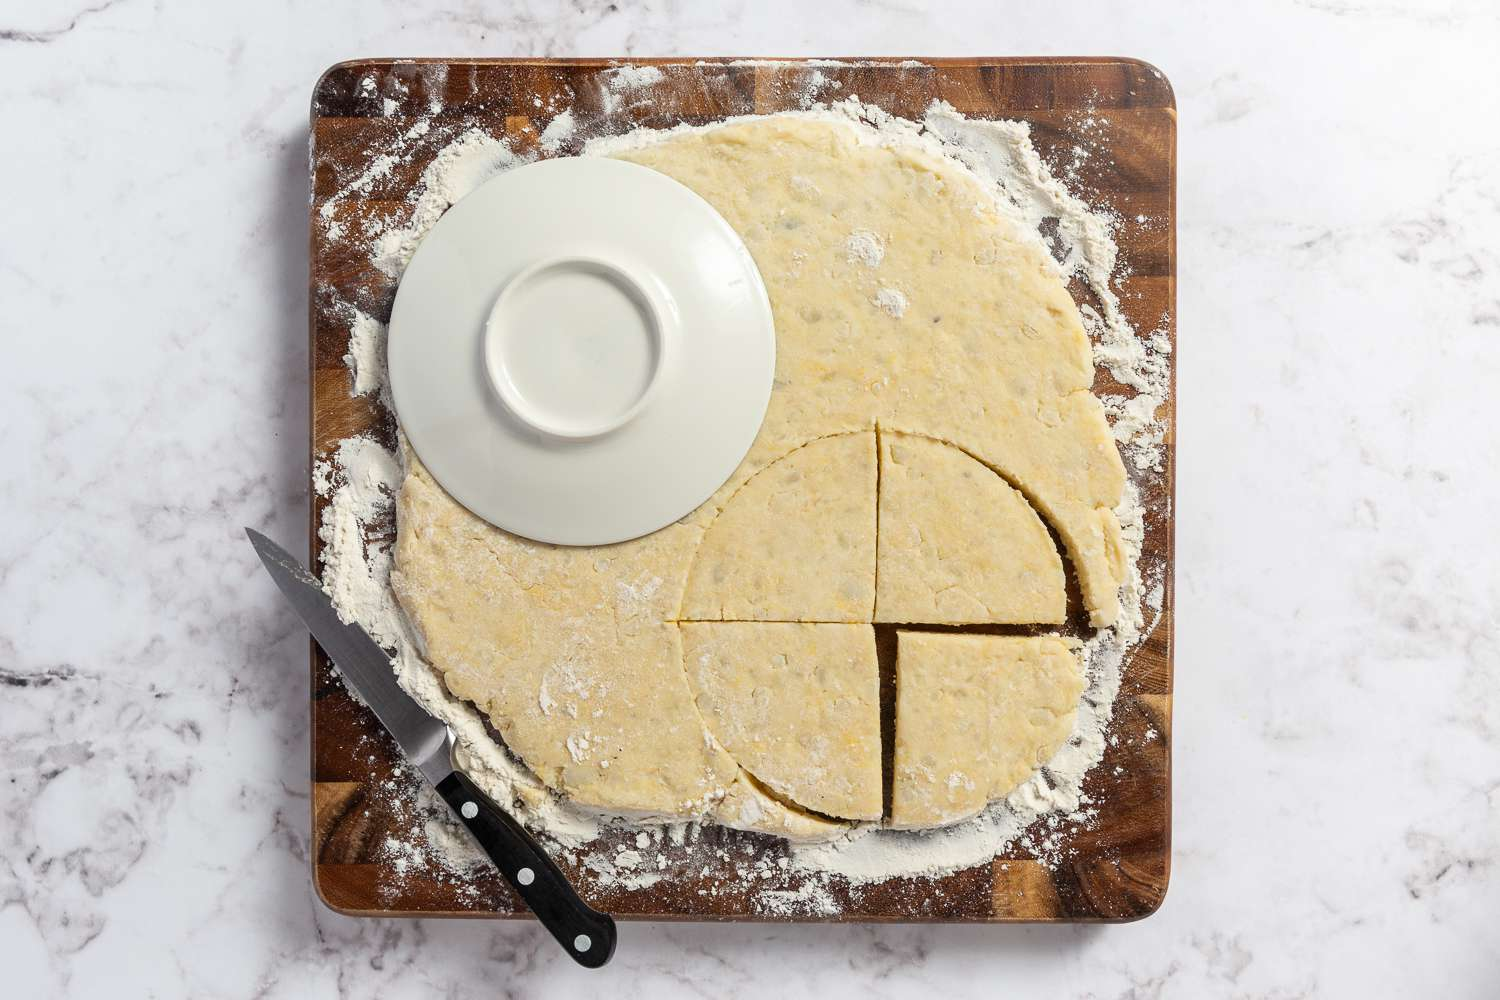 Dough with circles cut out, cut into wedges